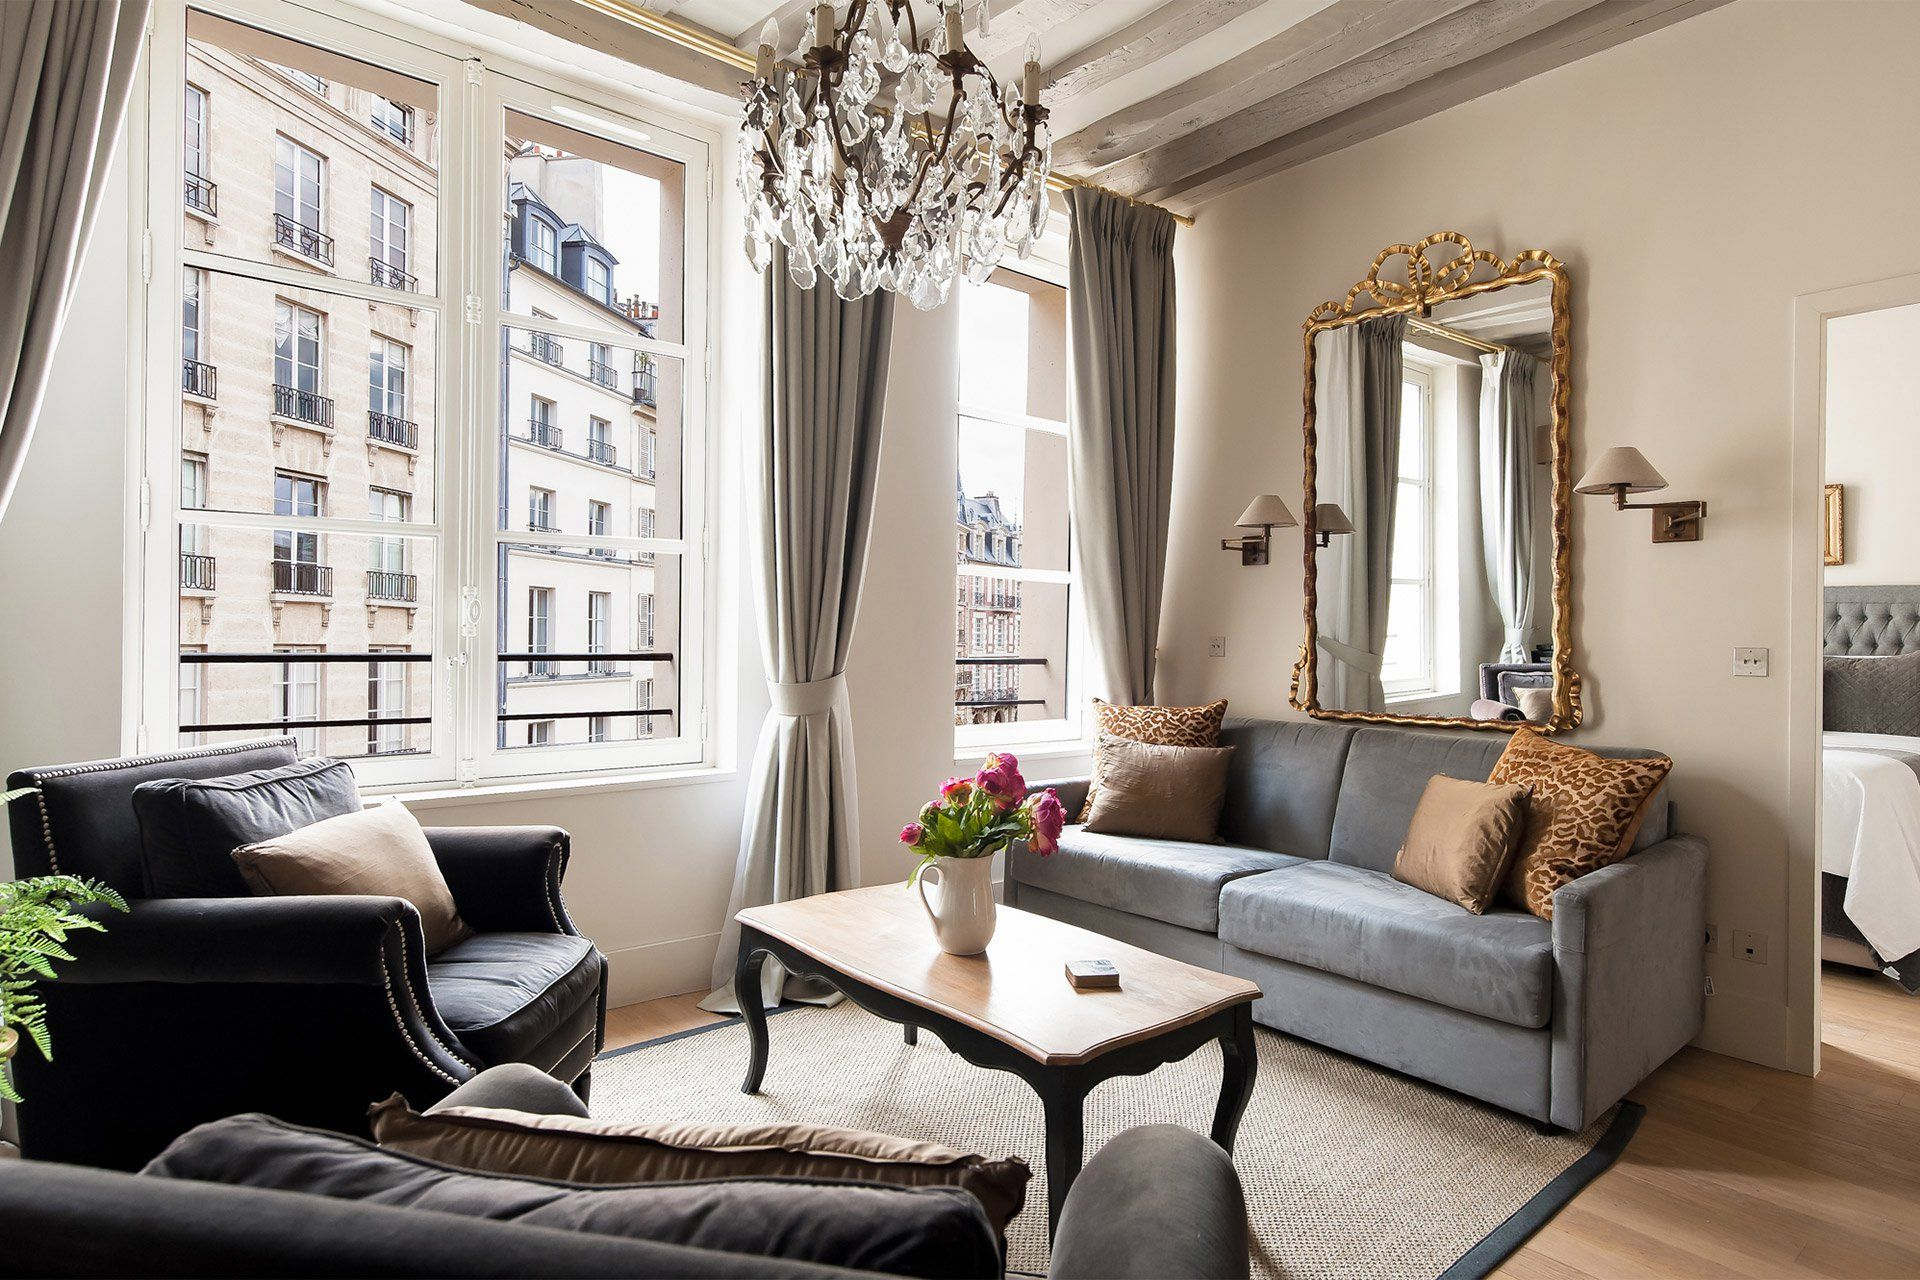 Place Dauphine One Bedroom Apartment Rental Paris Apartment Bedroom Decor Apartment Decorating Rental One Bedroom Apartment